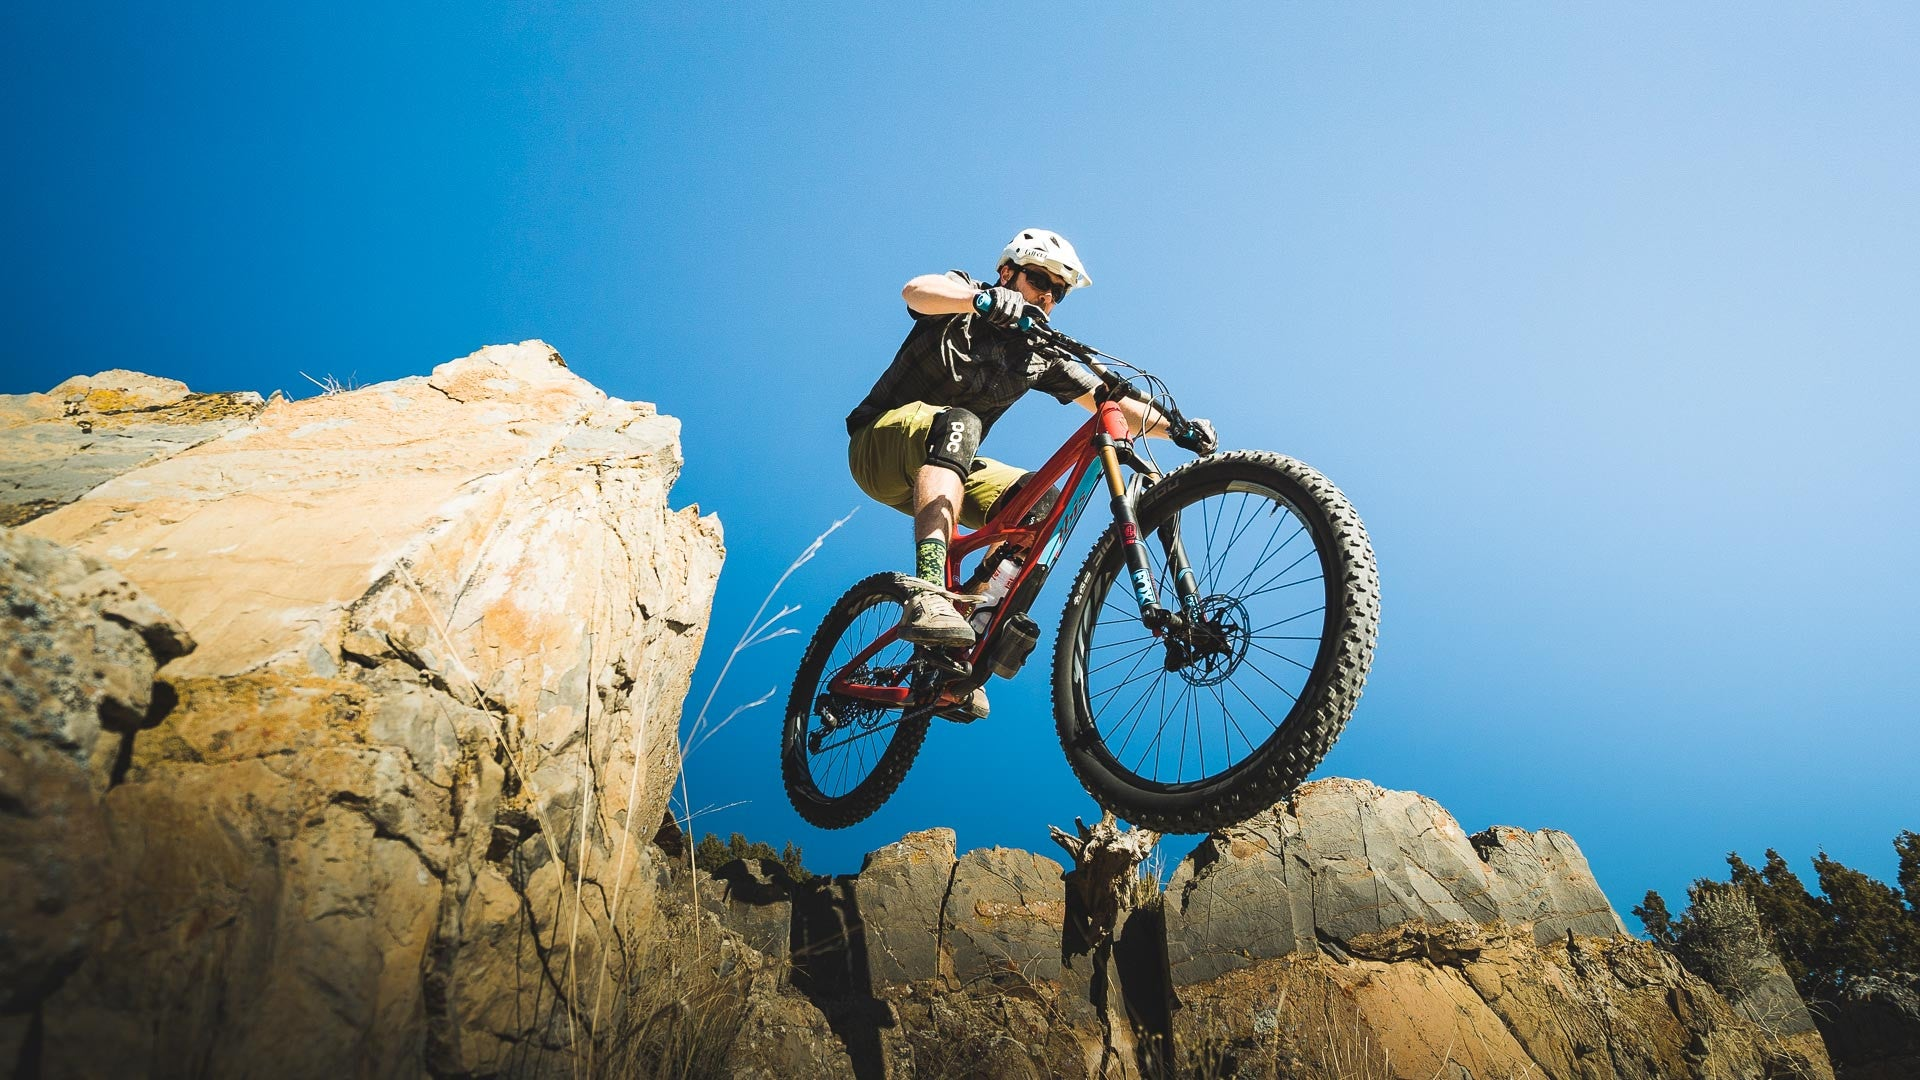 The Ibis Mojo 3 is an extremely capable trailbike